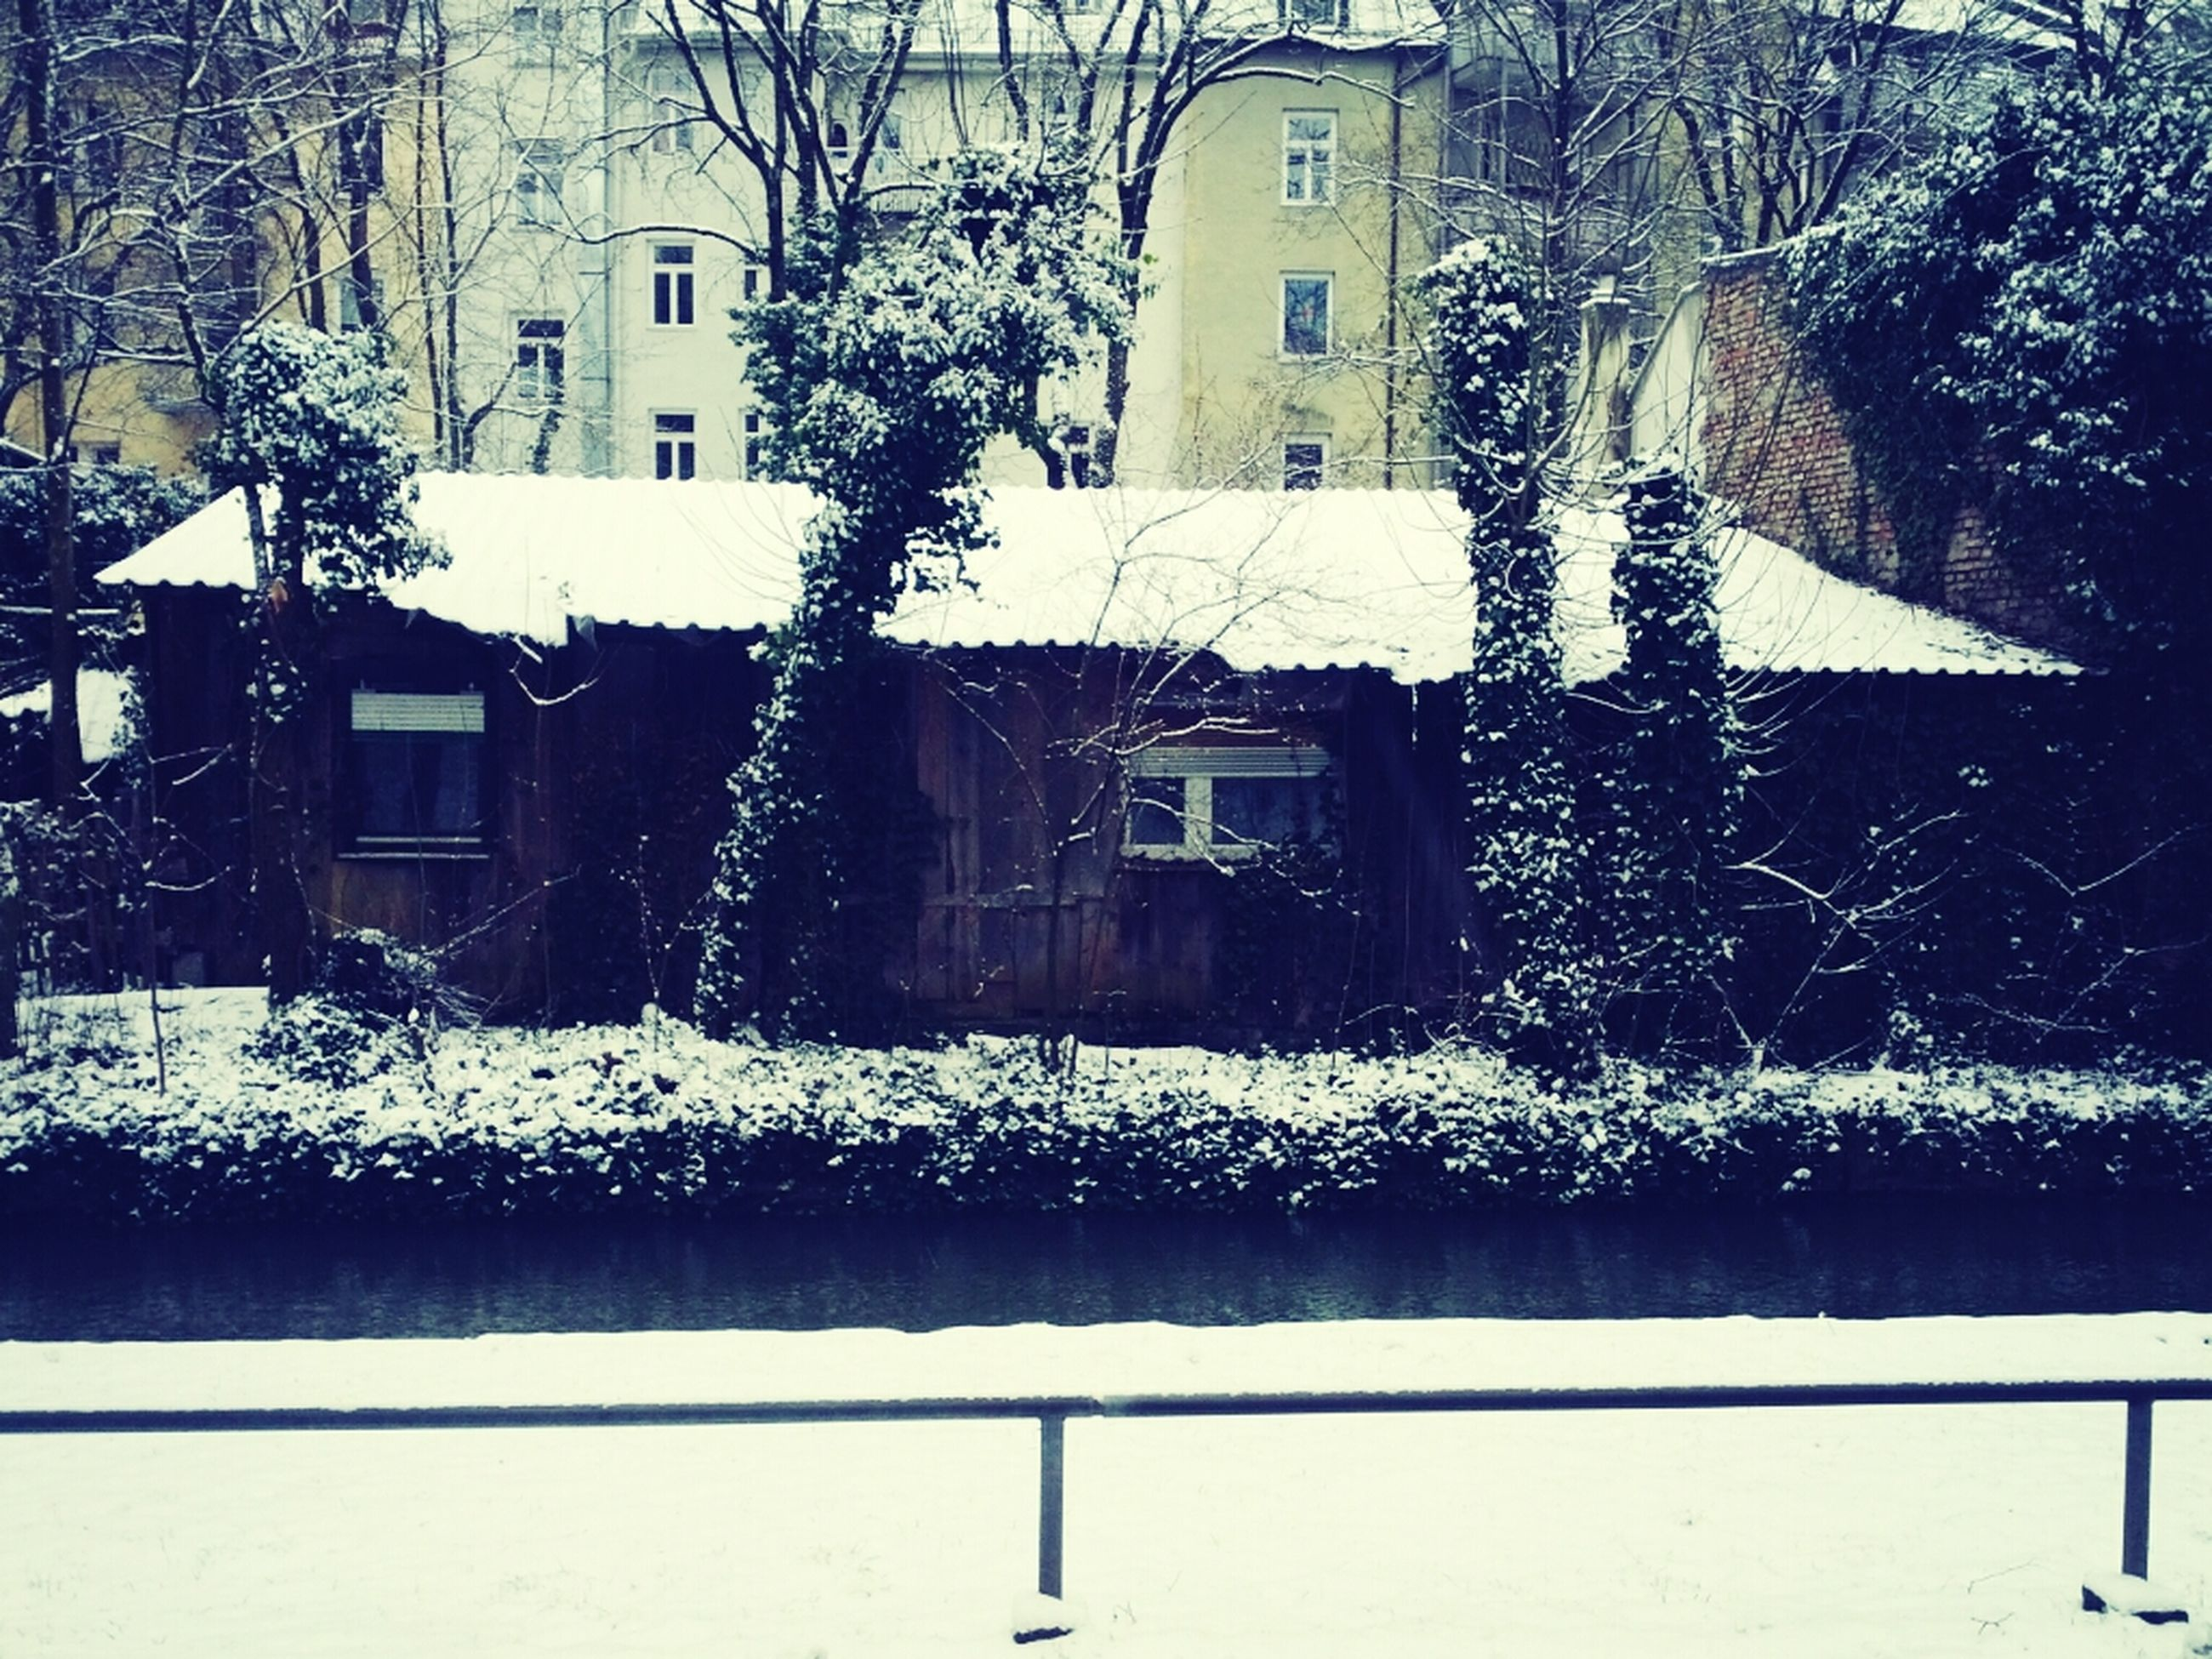 building exterior, architecture, built structure, snow, winter, cold temperature, season, house, residential building, tree, residential structure, weather, covering, window, bare tree, white color, city, building, nature, day